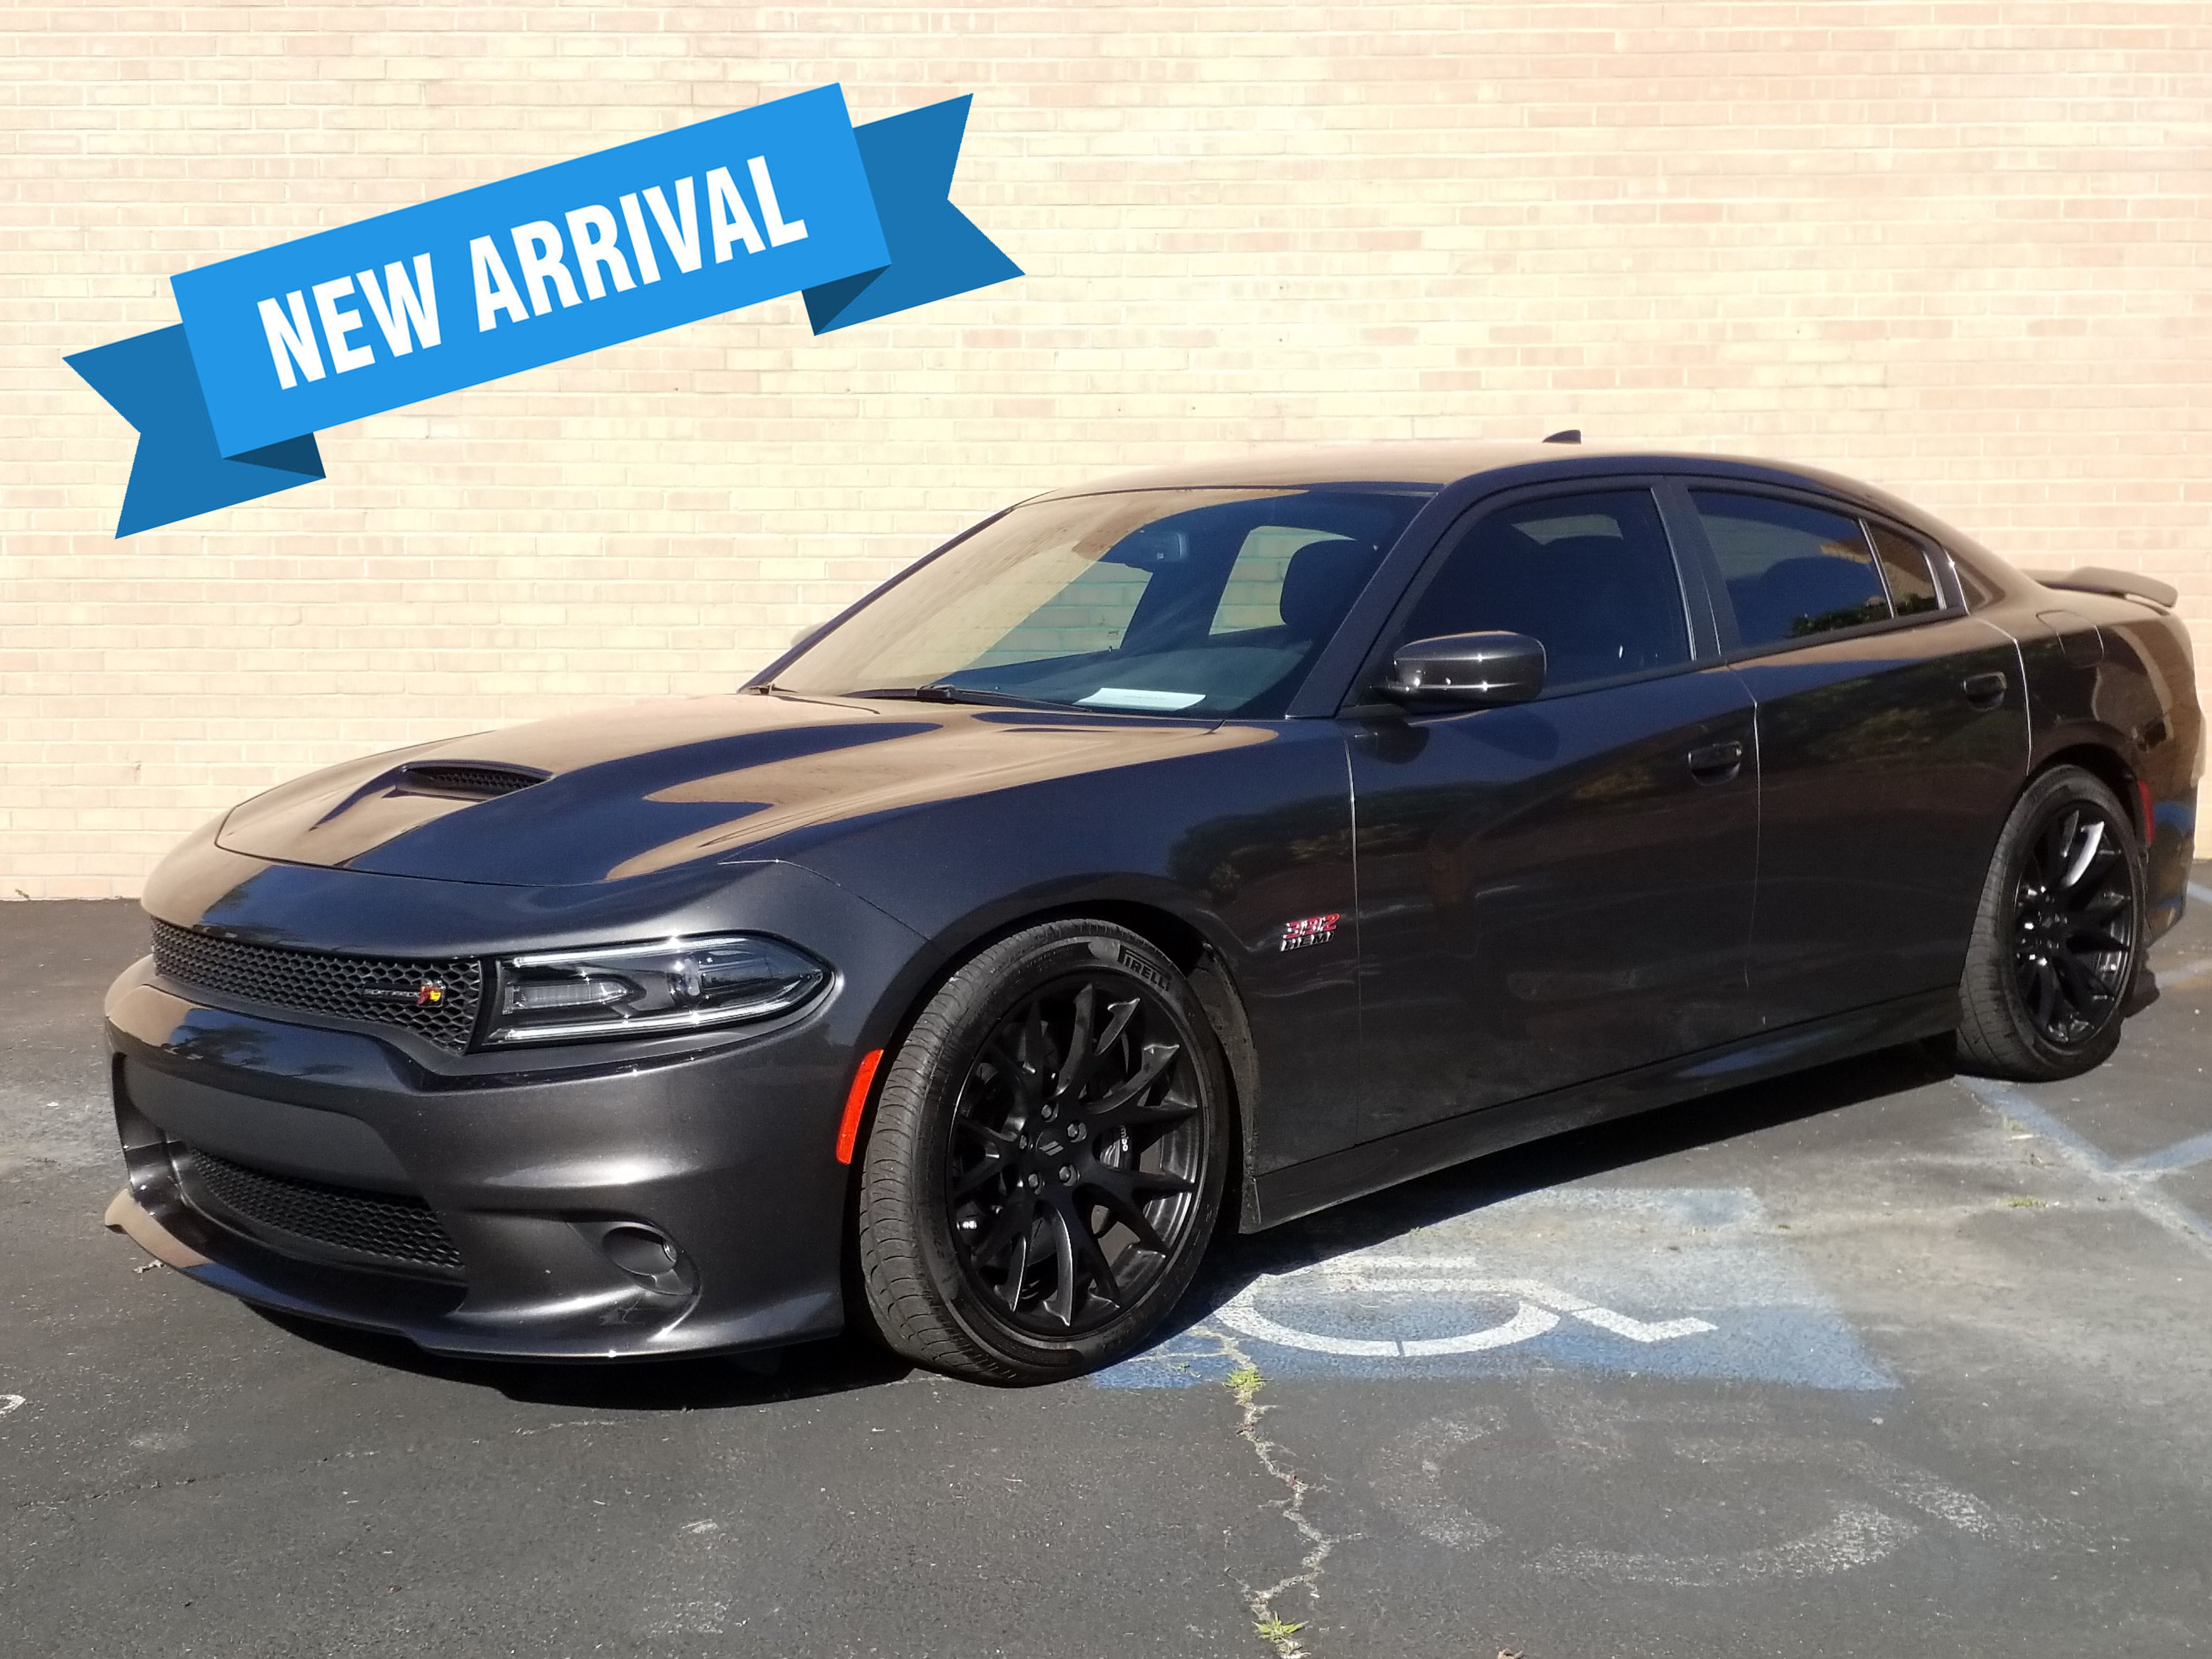 Used, 2017, Dodge, Charger R/T Scat Pack, Automobiles